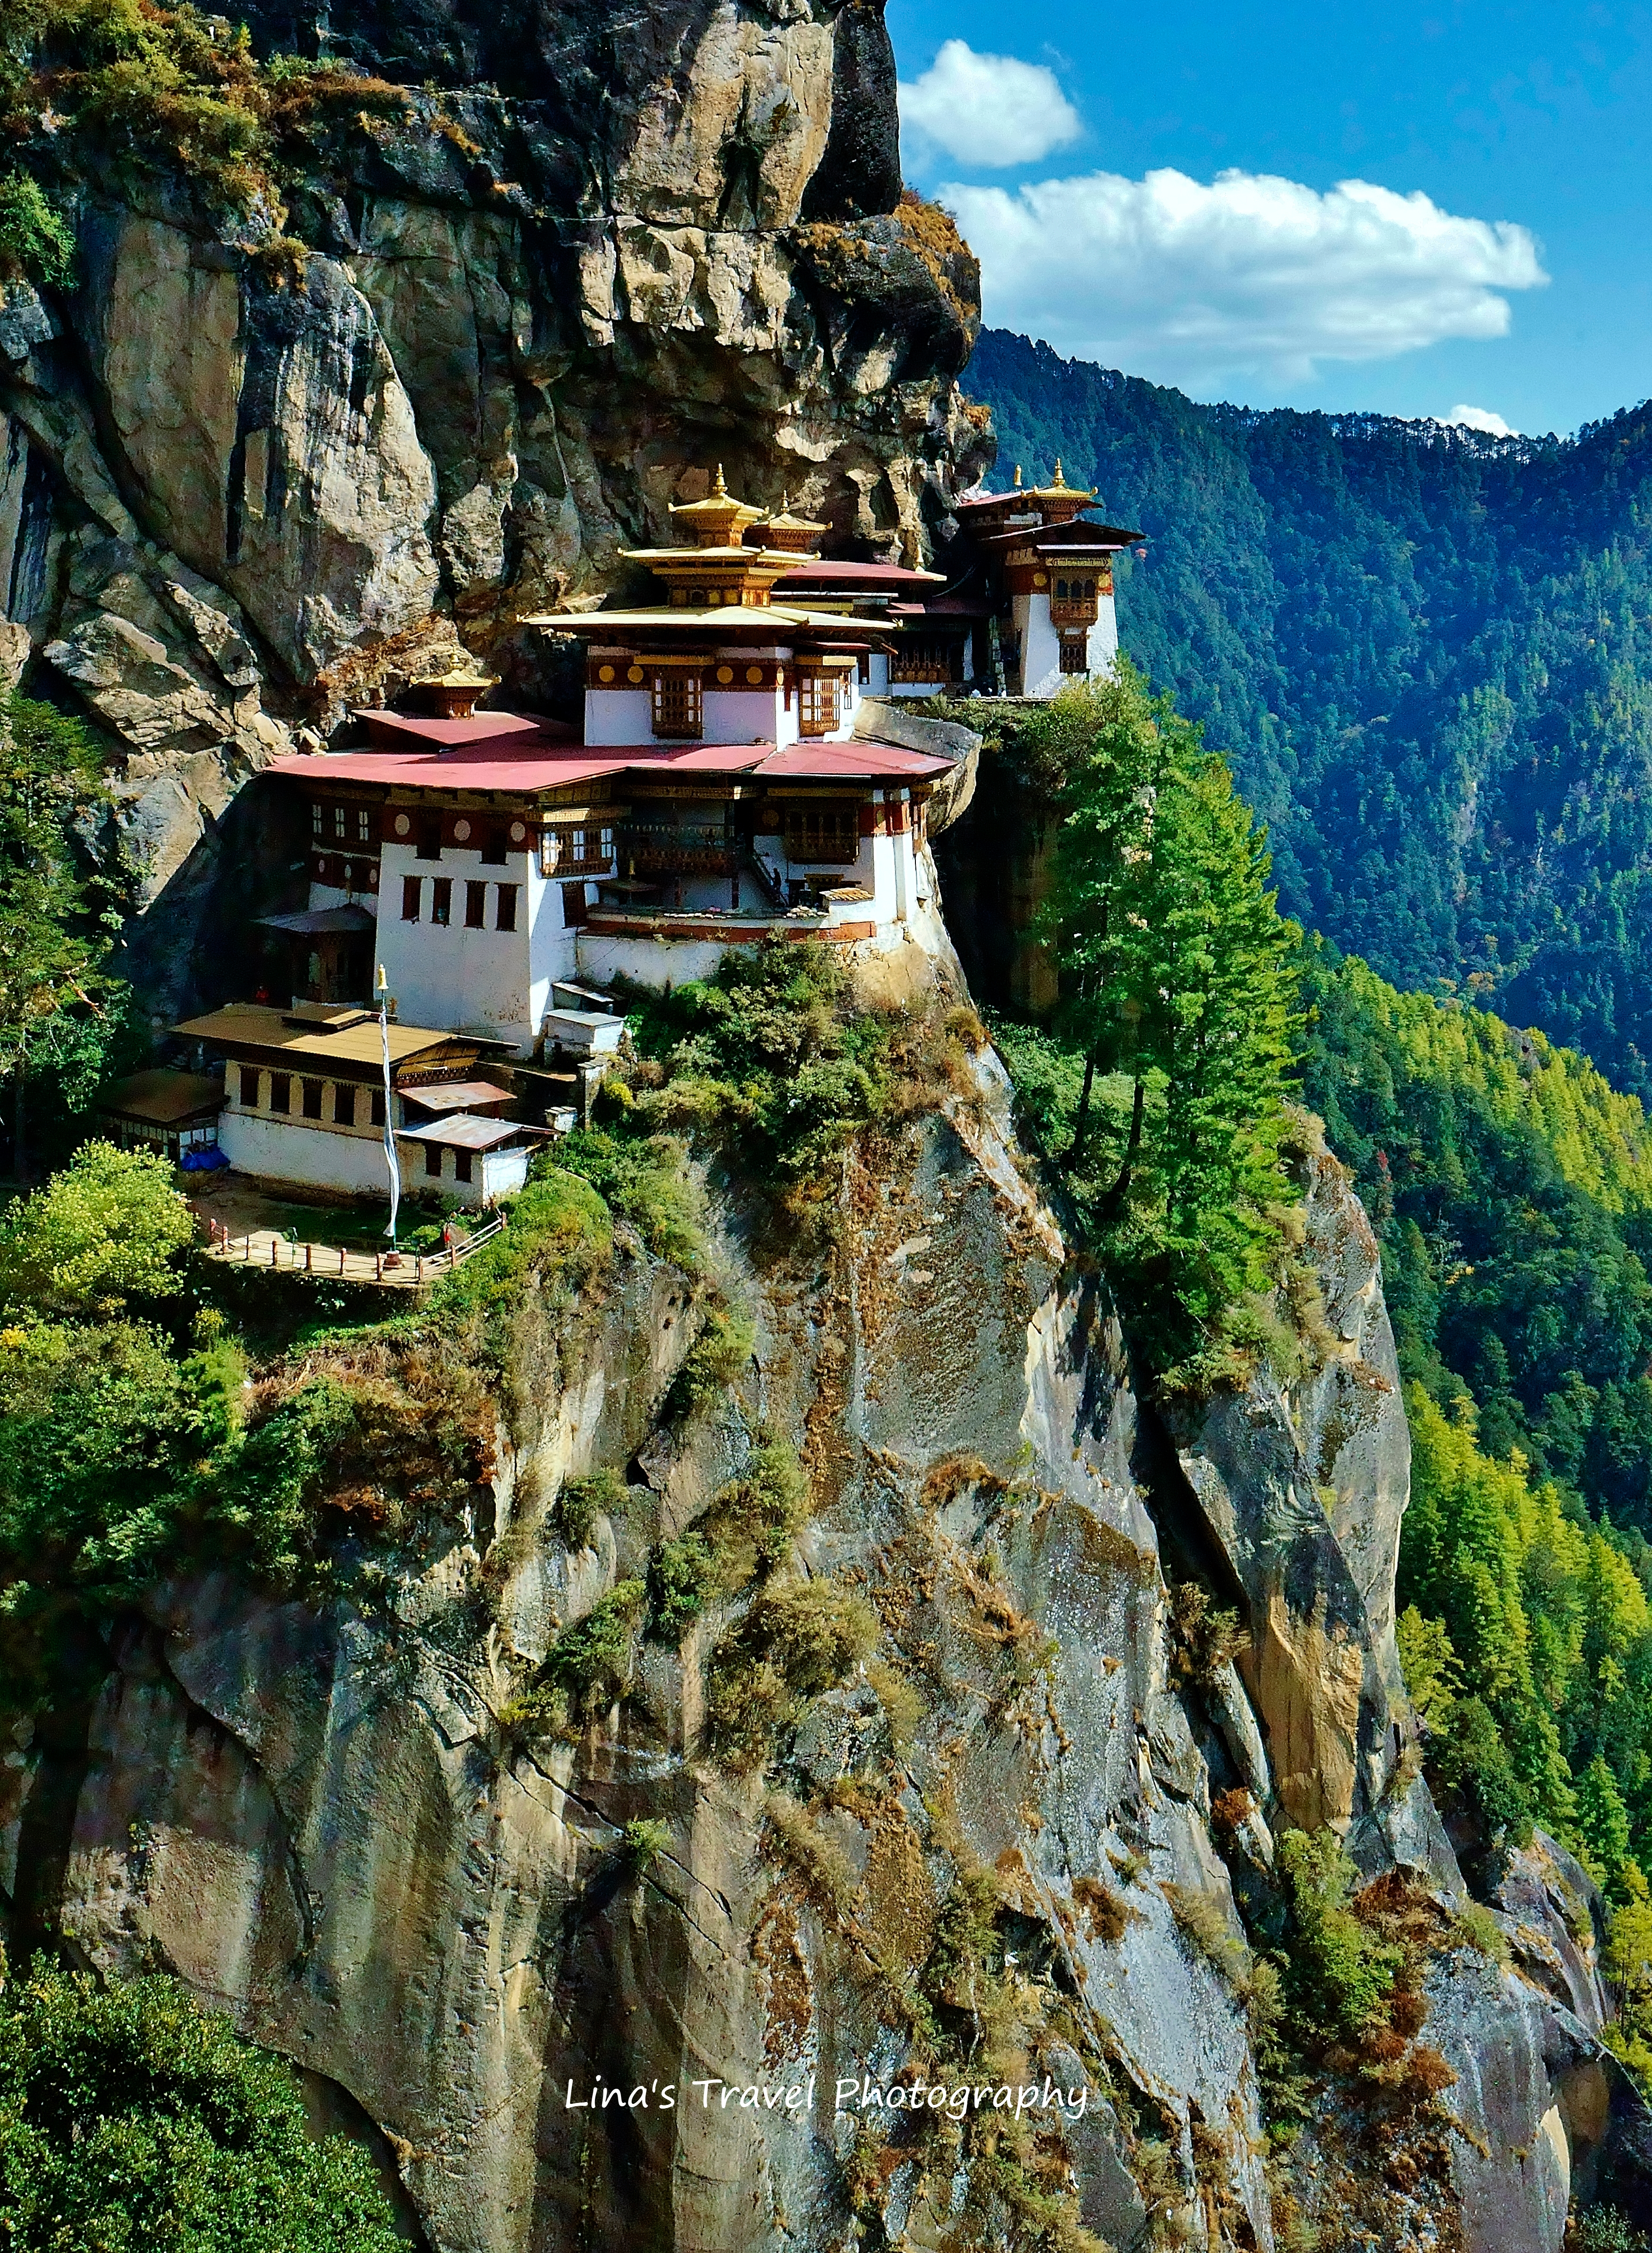 Tiger's Nest, Bhutan's most famous monastery and World's magical architecture masterpiece, hanging on high mountain cliff, almost 3000 meter over sea level.